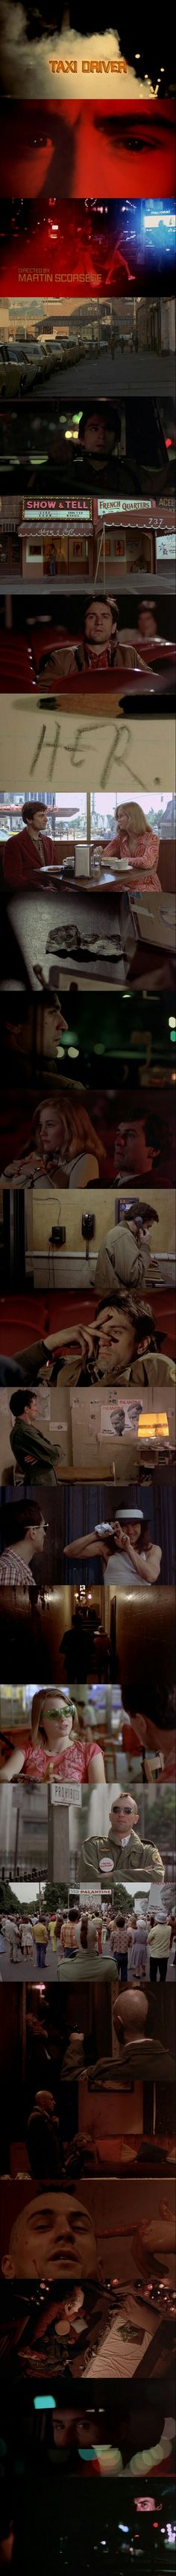 Taxi Driver (1976) Directed by Martin Scorsese. Starring Robert De Niro in leading role as mentally unstable taxi driver Travis Bickle.